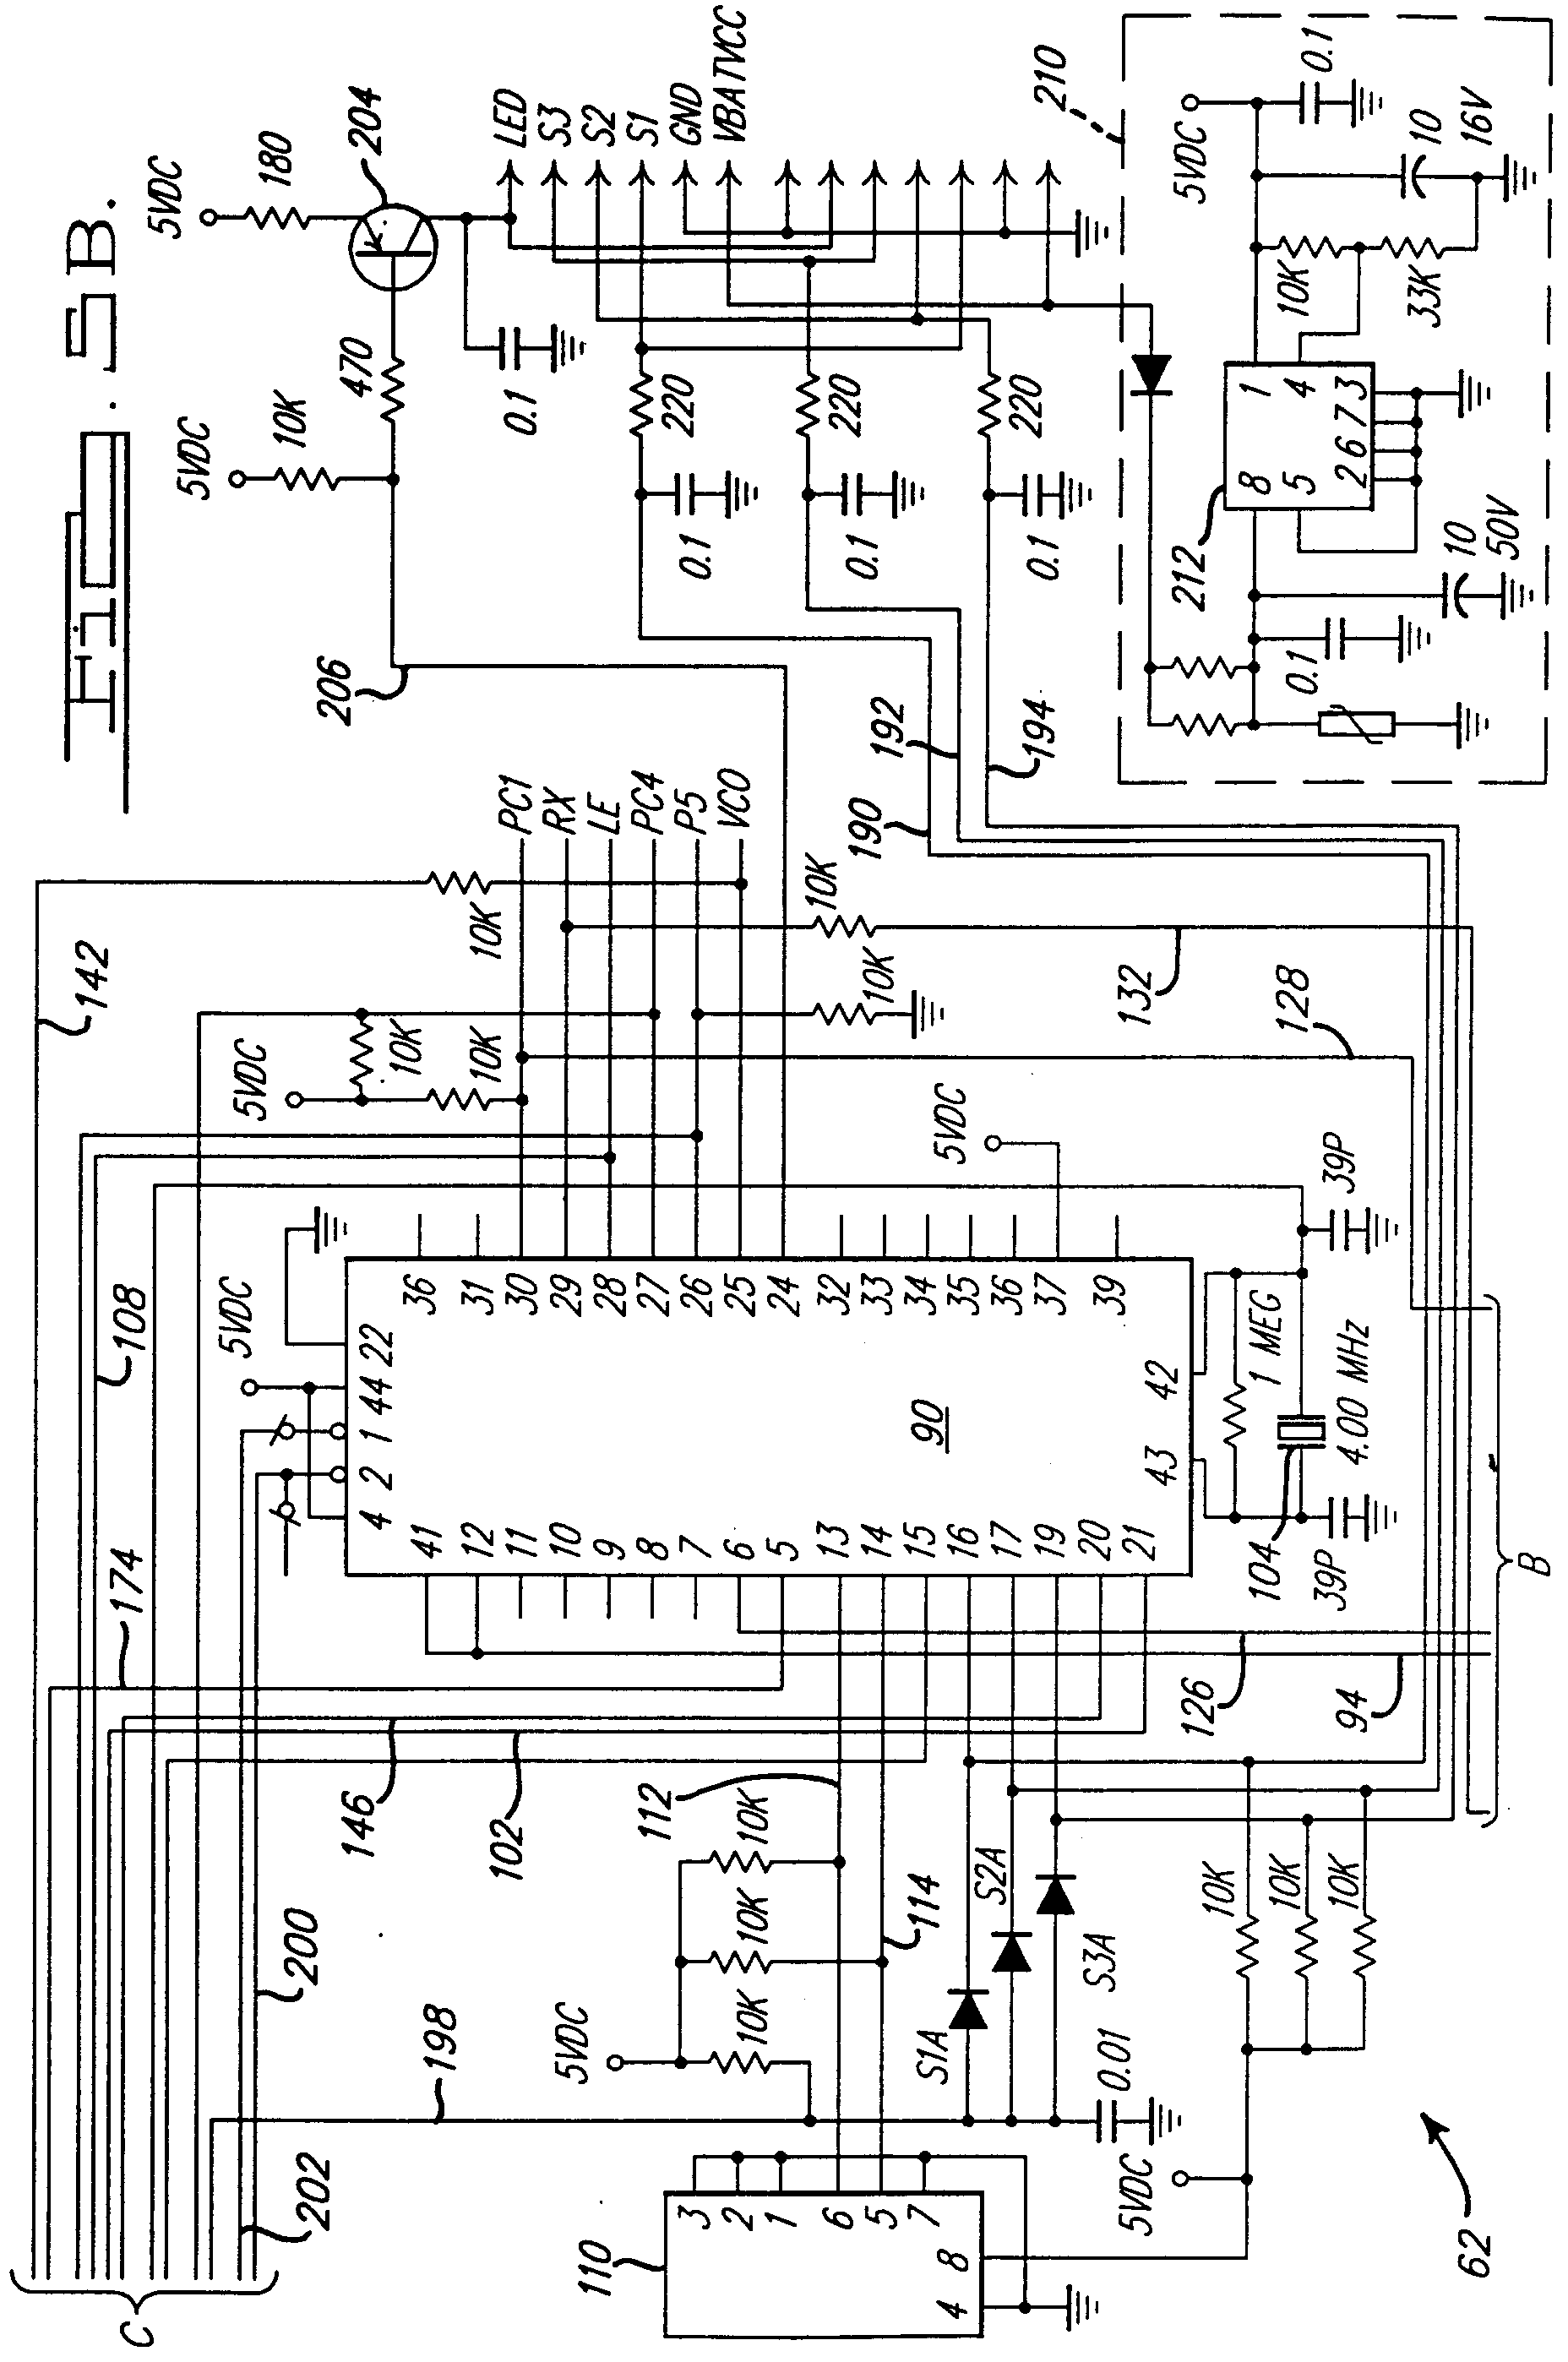 00350001 patent ep0875646a1 universal garage door opener google patents garage door opener wiring schematic at gsmx.co